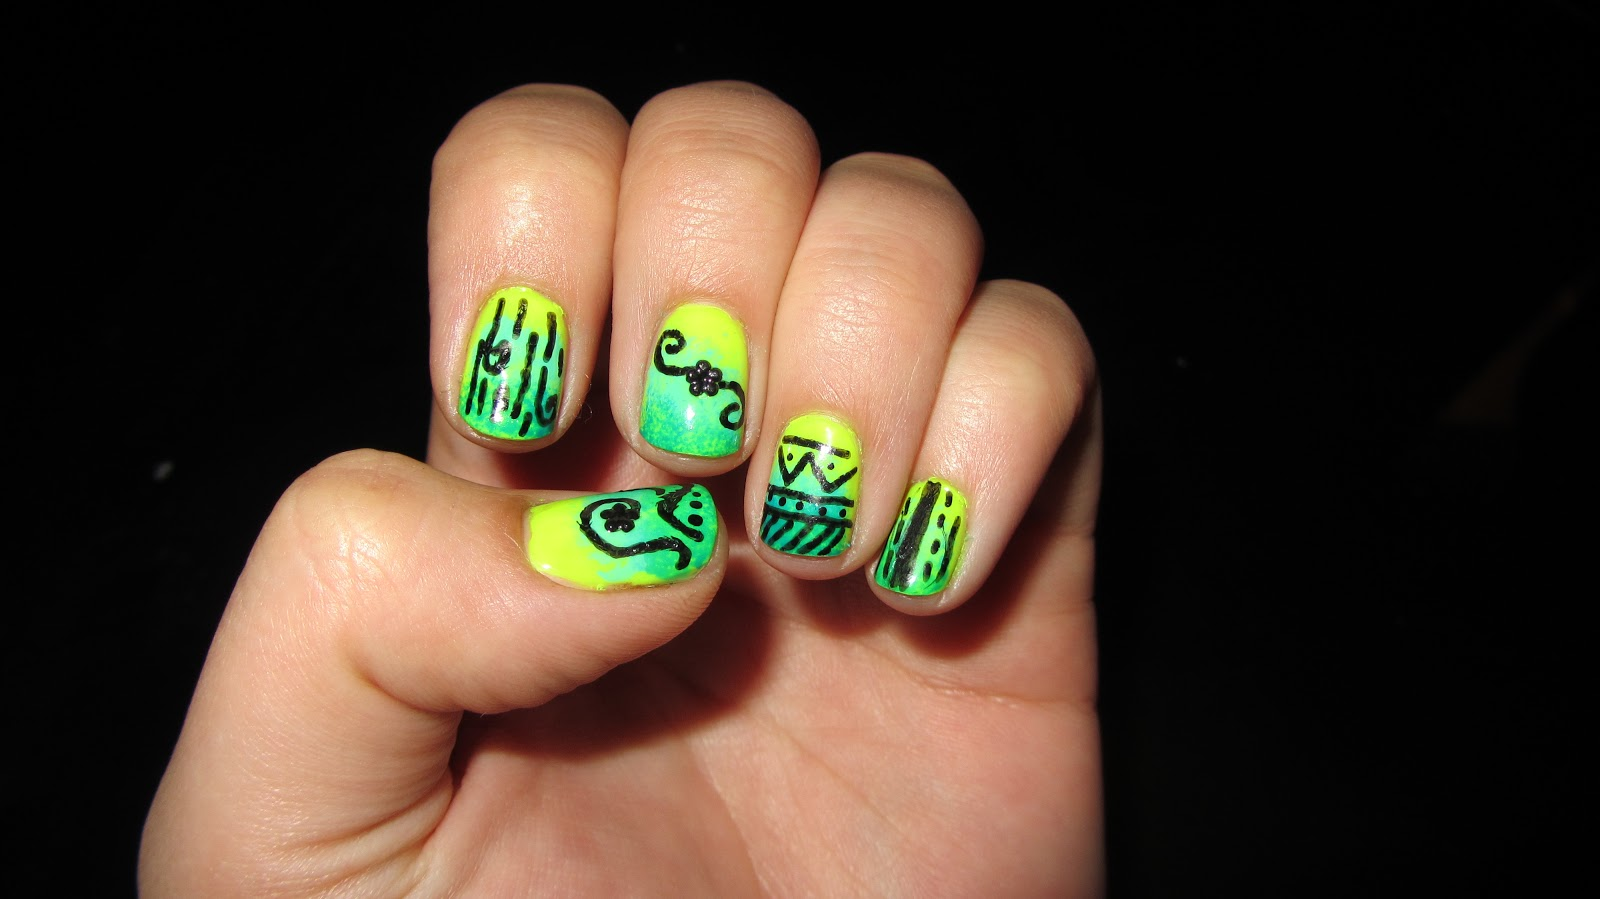 Nail Freak Color Club Neons And Sally Hansen Nail Art Pen